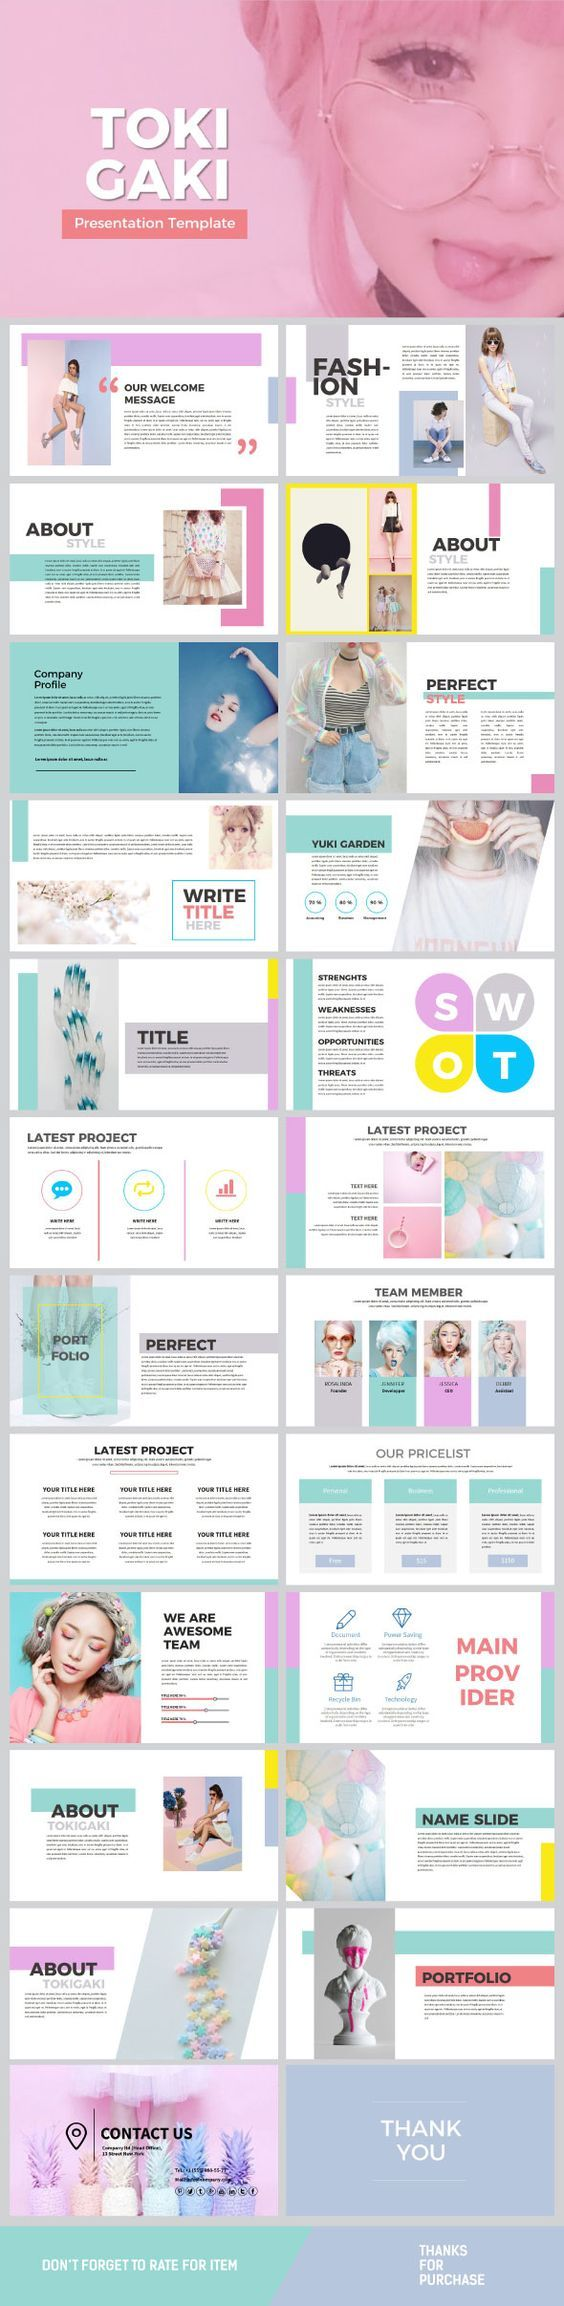 Tokigaki powerpoint template web design pinterest tokigaki powerpoint template toneelgroepblik Image collections